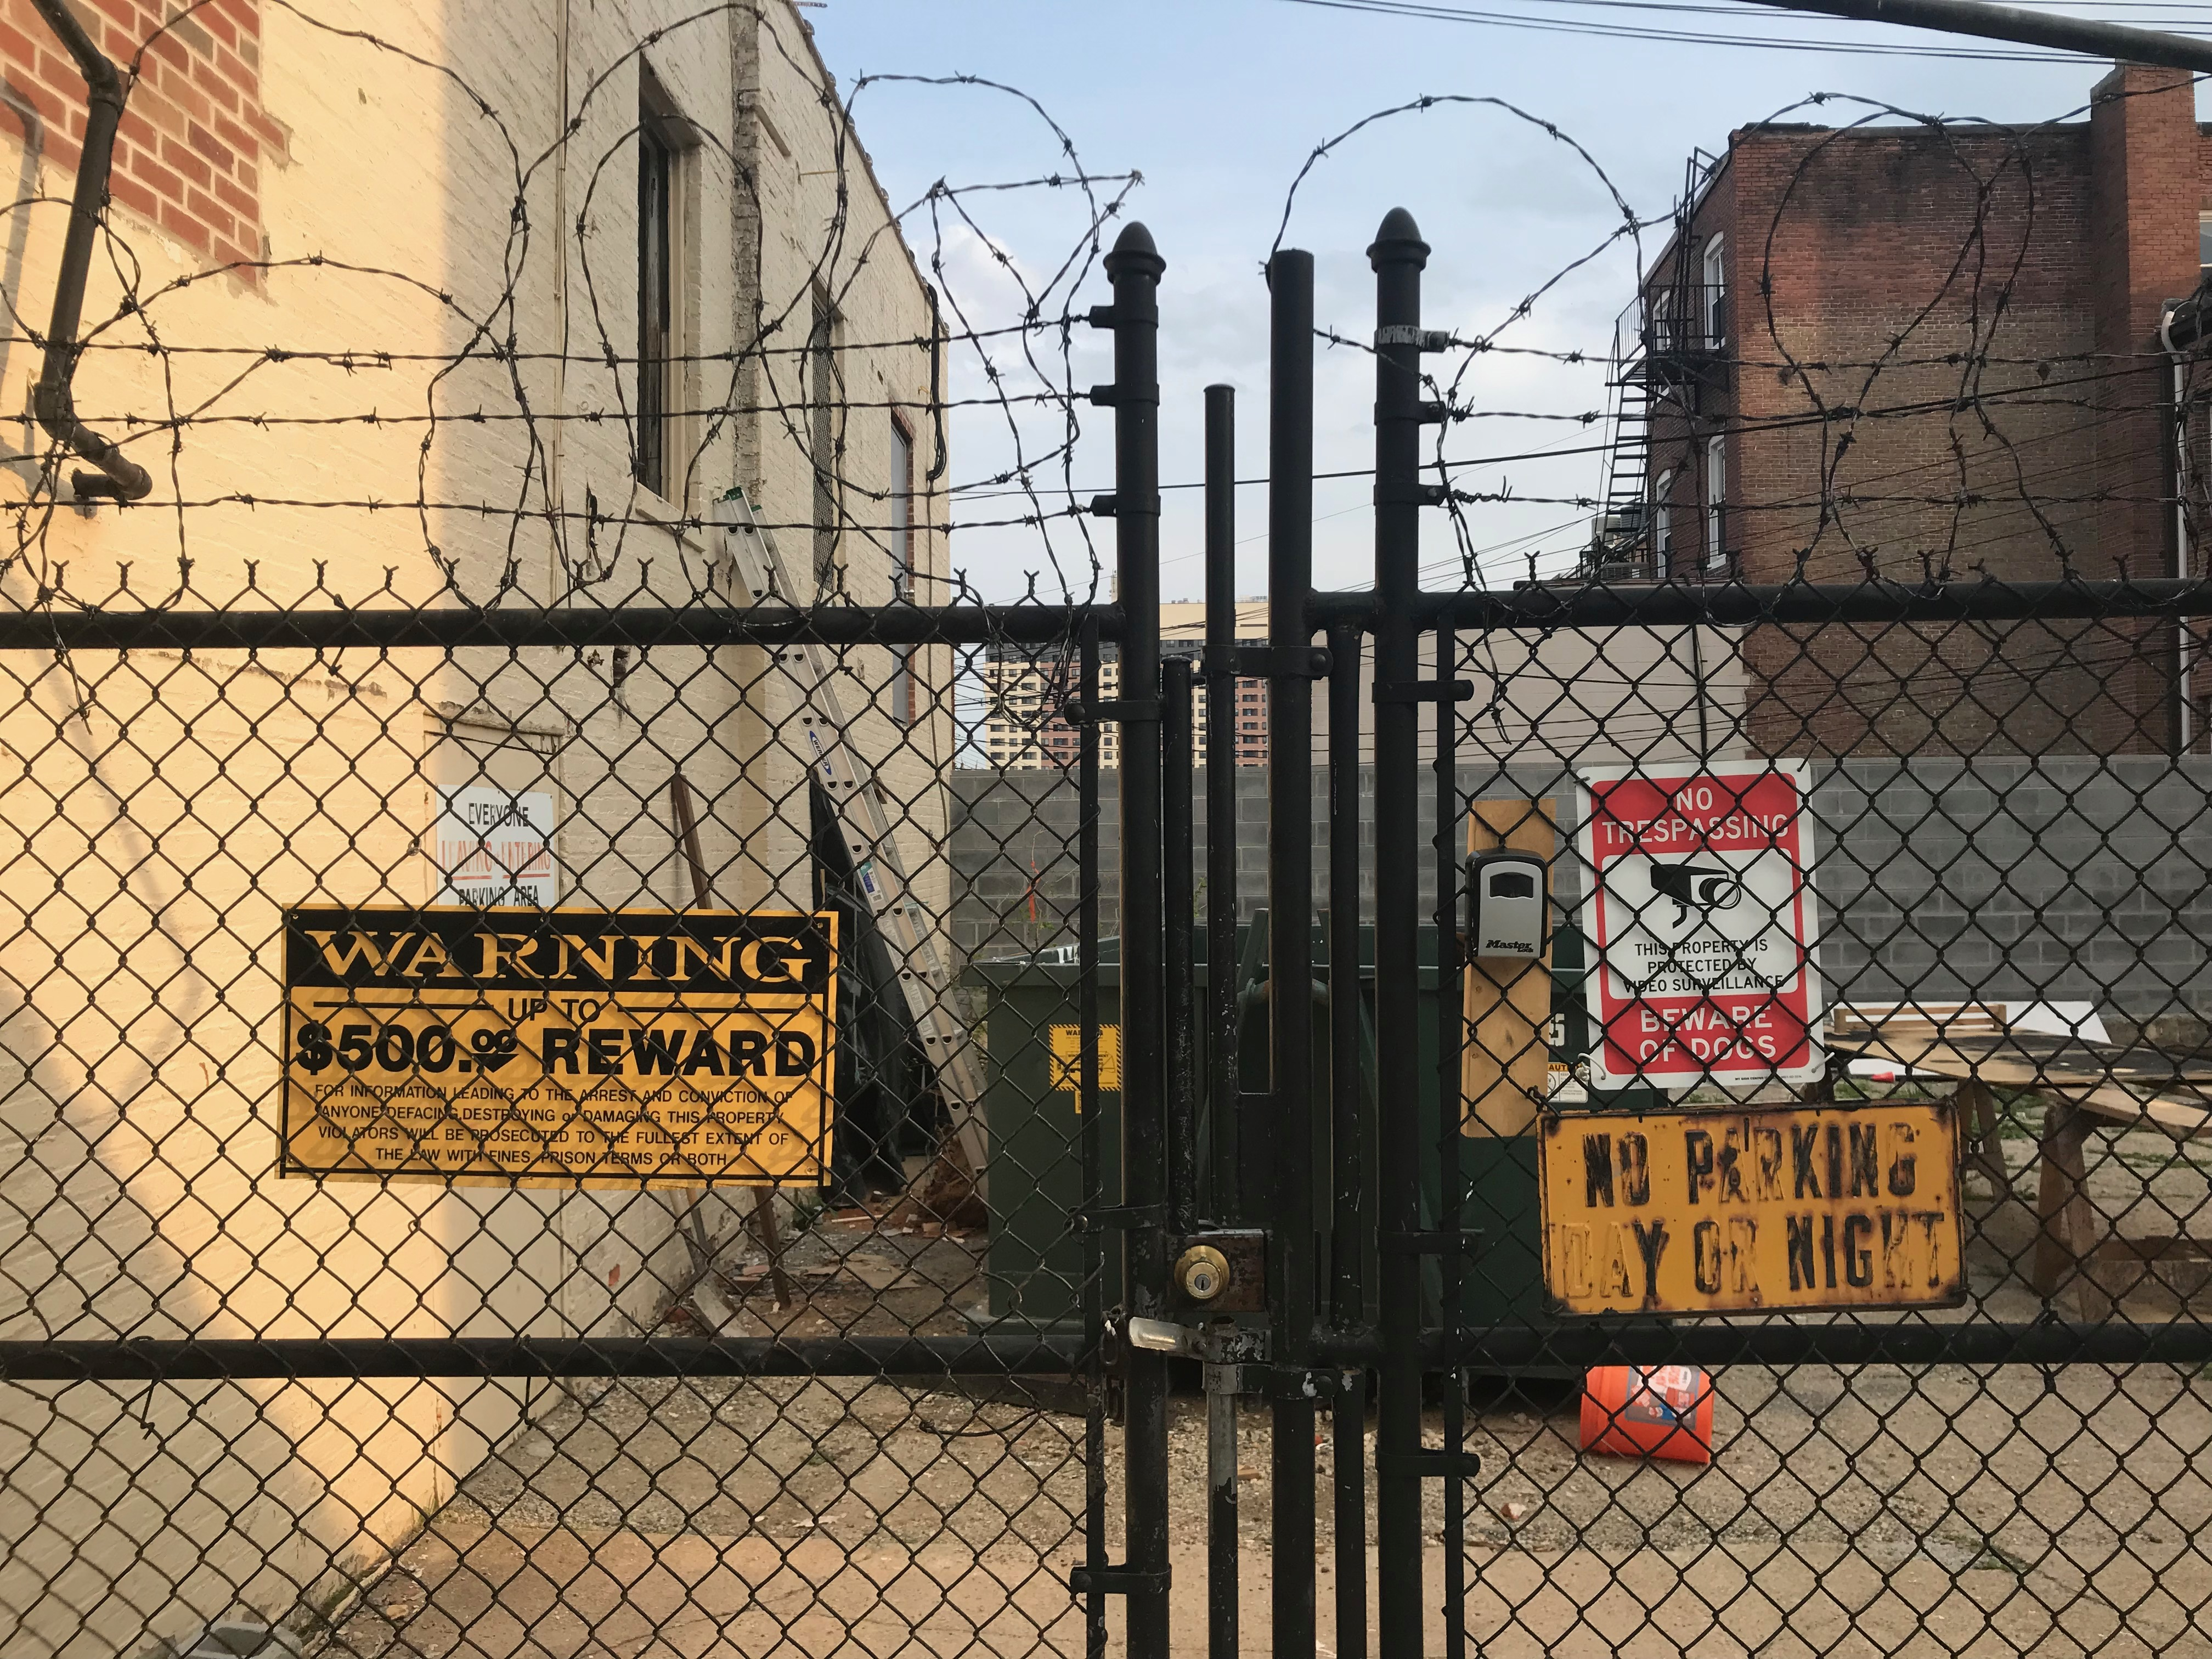 Signs and fence along W. 23rd Street between Maryland Avenue and Morton Street, Baltimore, MD, 23rd Street, Baltimore, Dumpster, Fence, HQ Photo